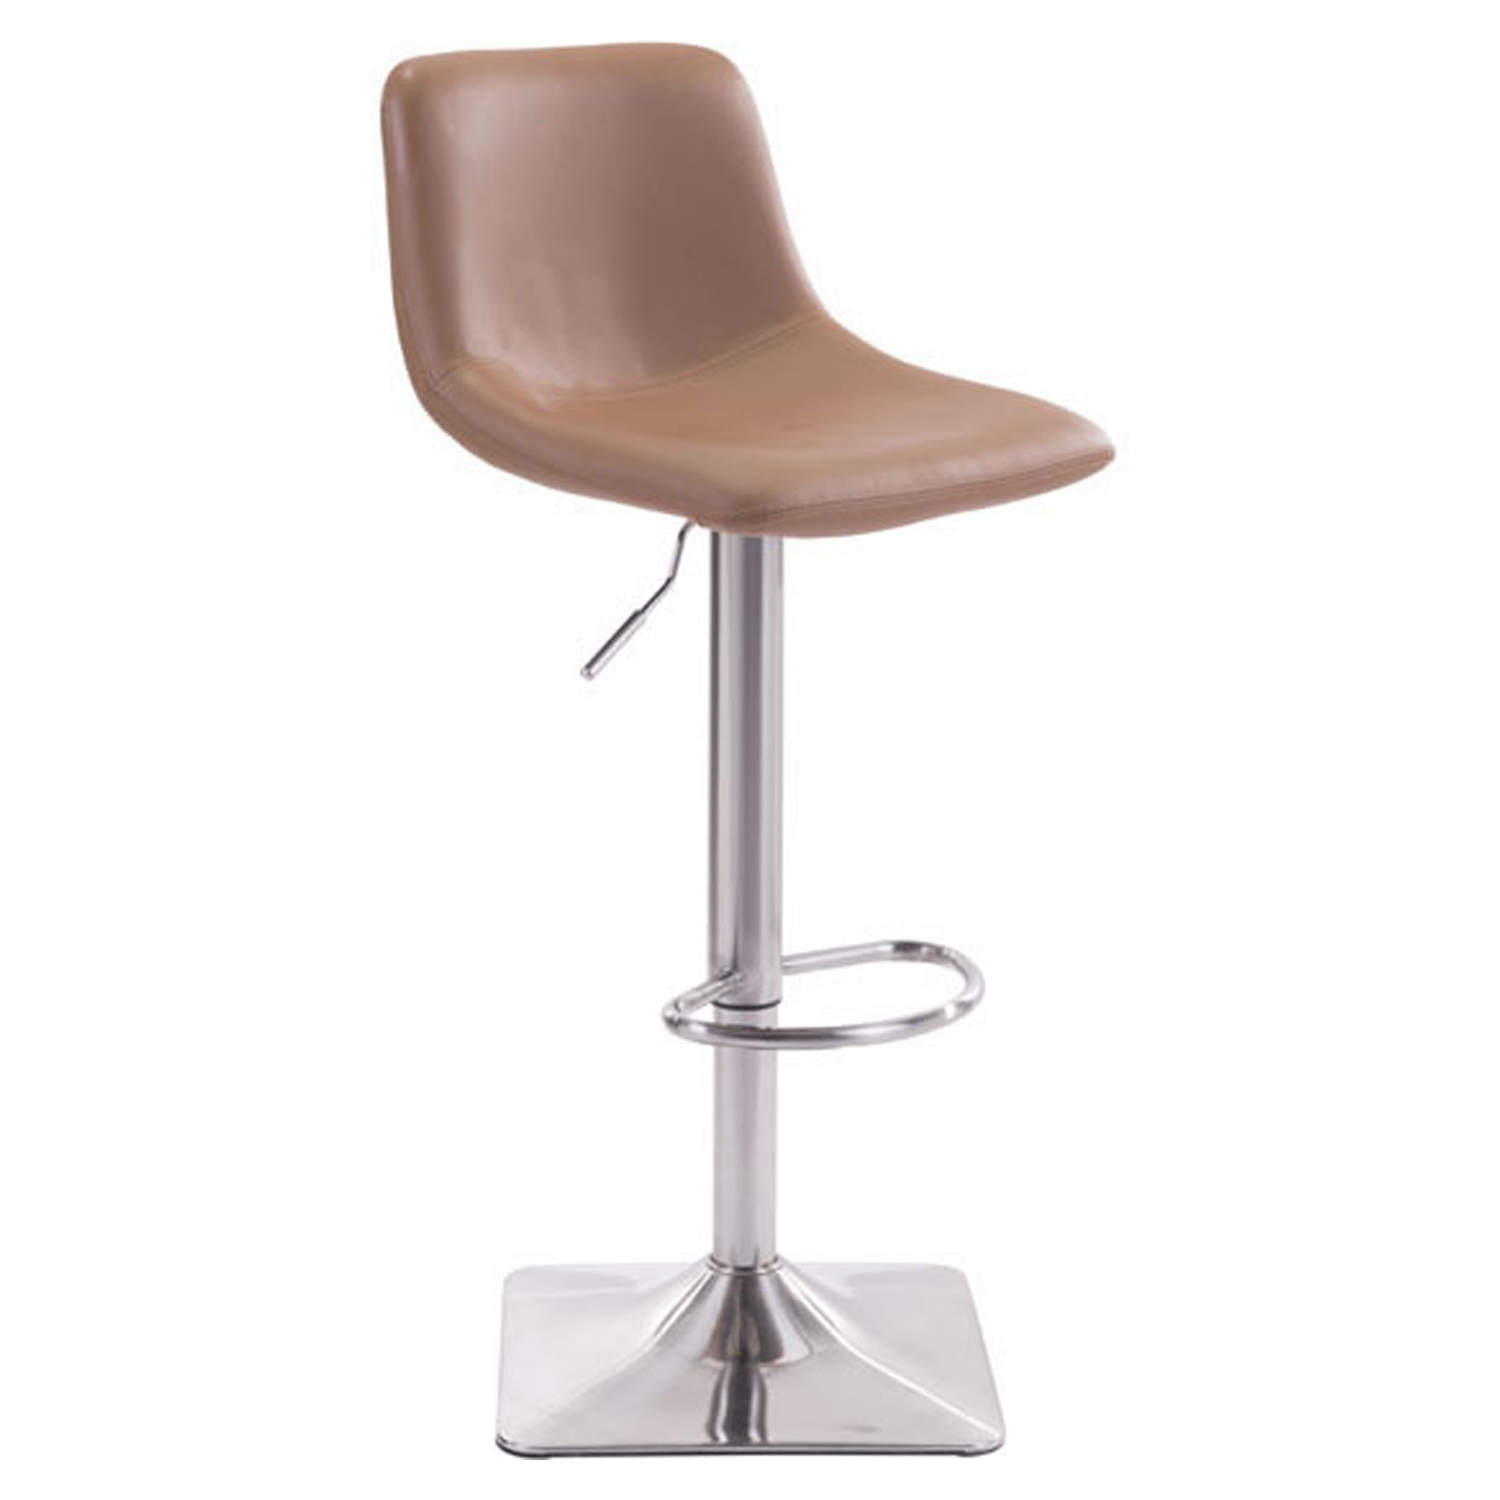 Cougar Bar Chair - Adjustable, Taupe